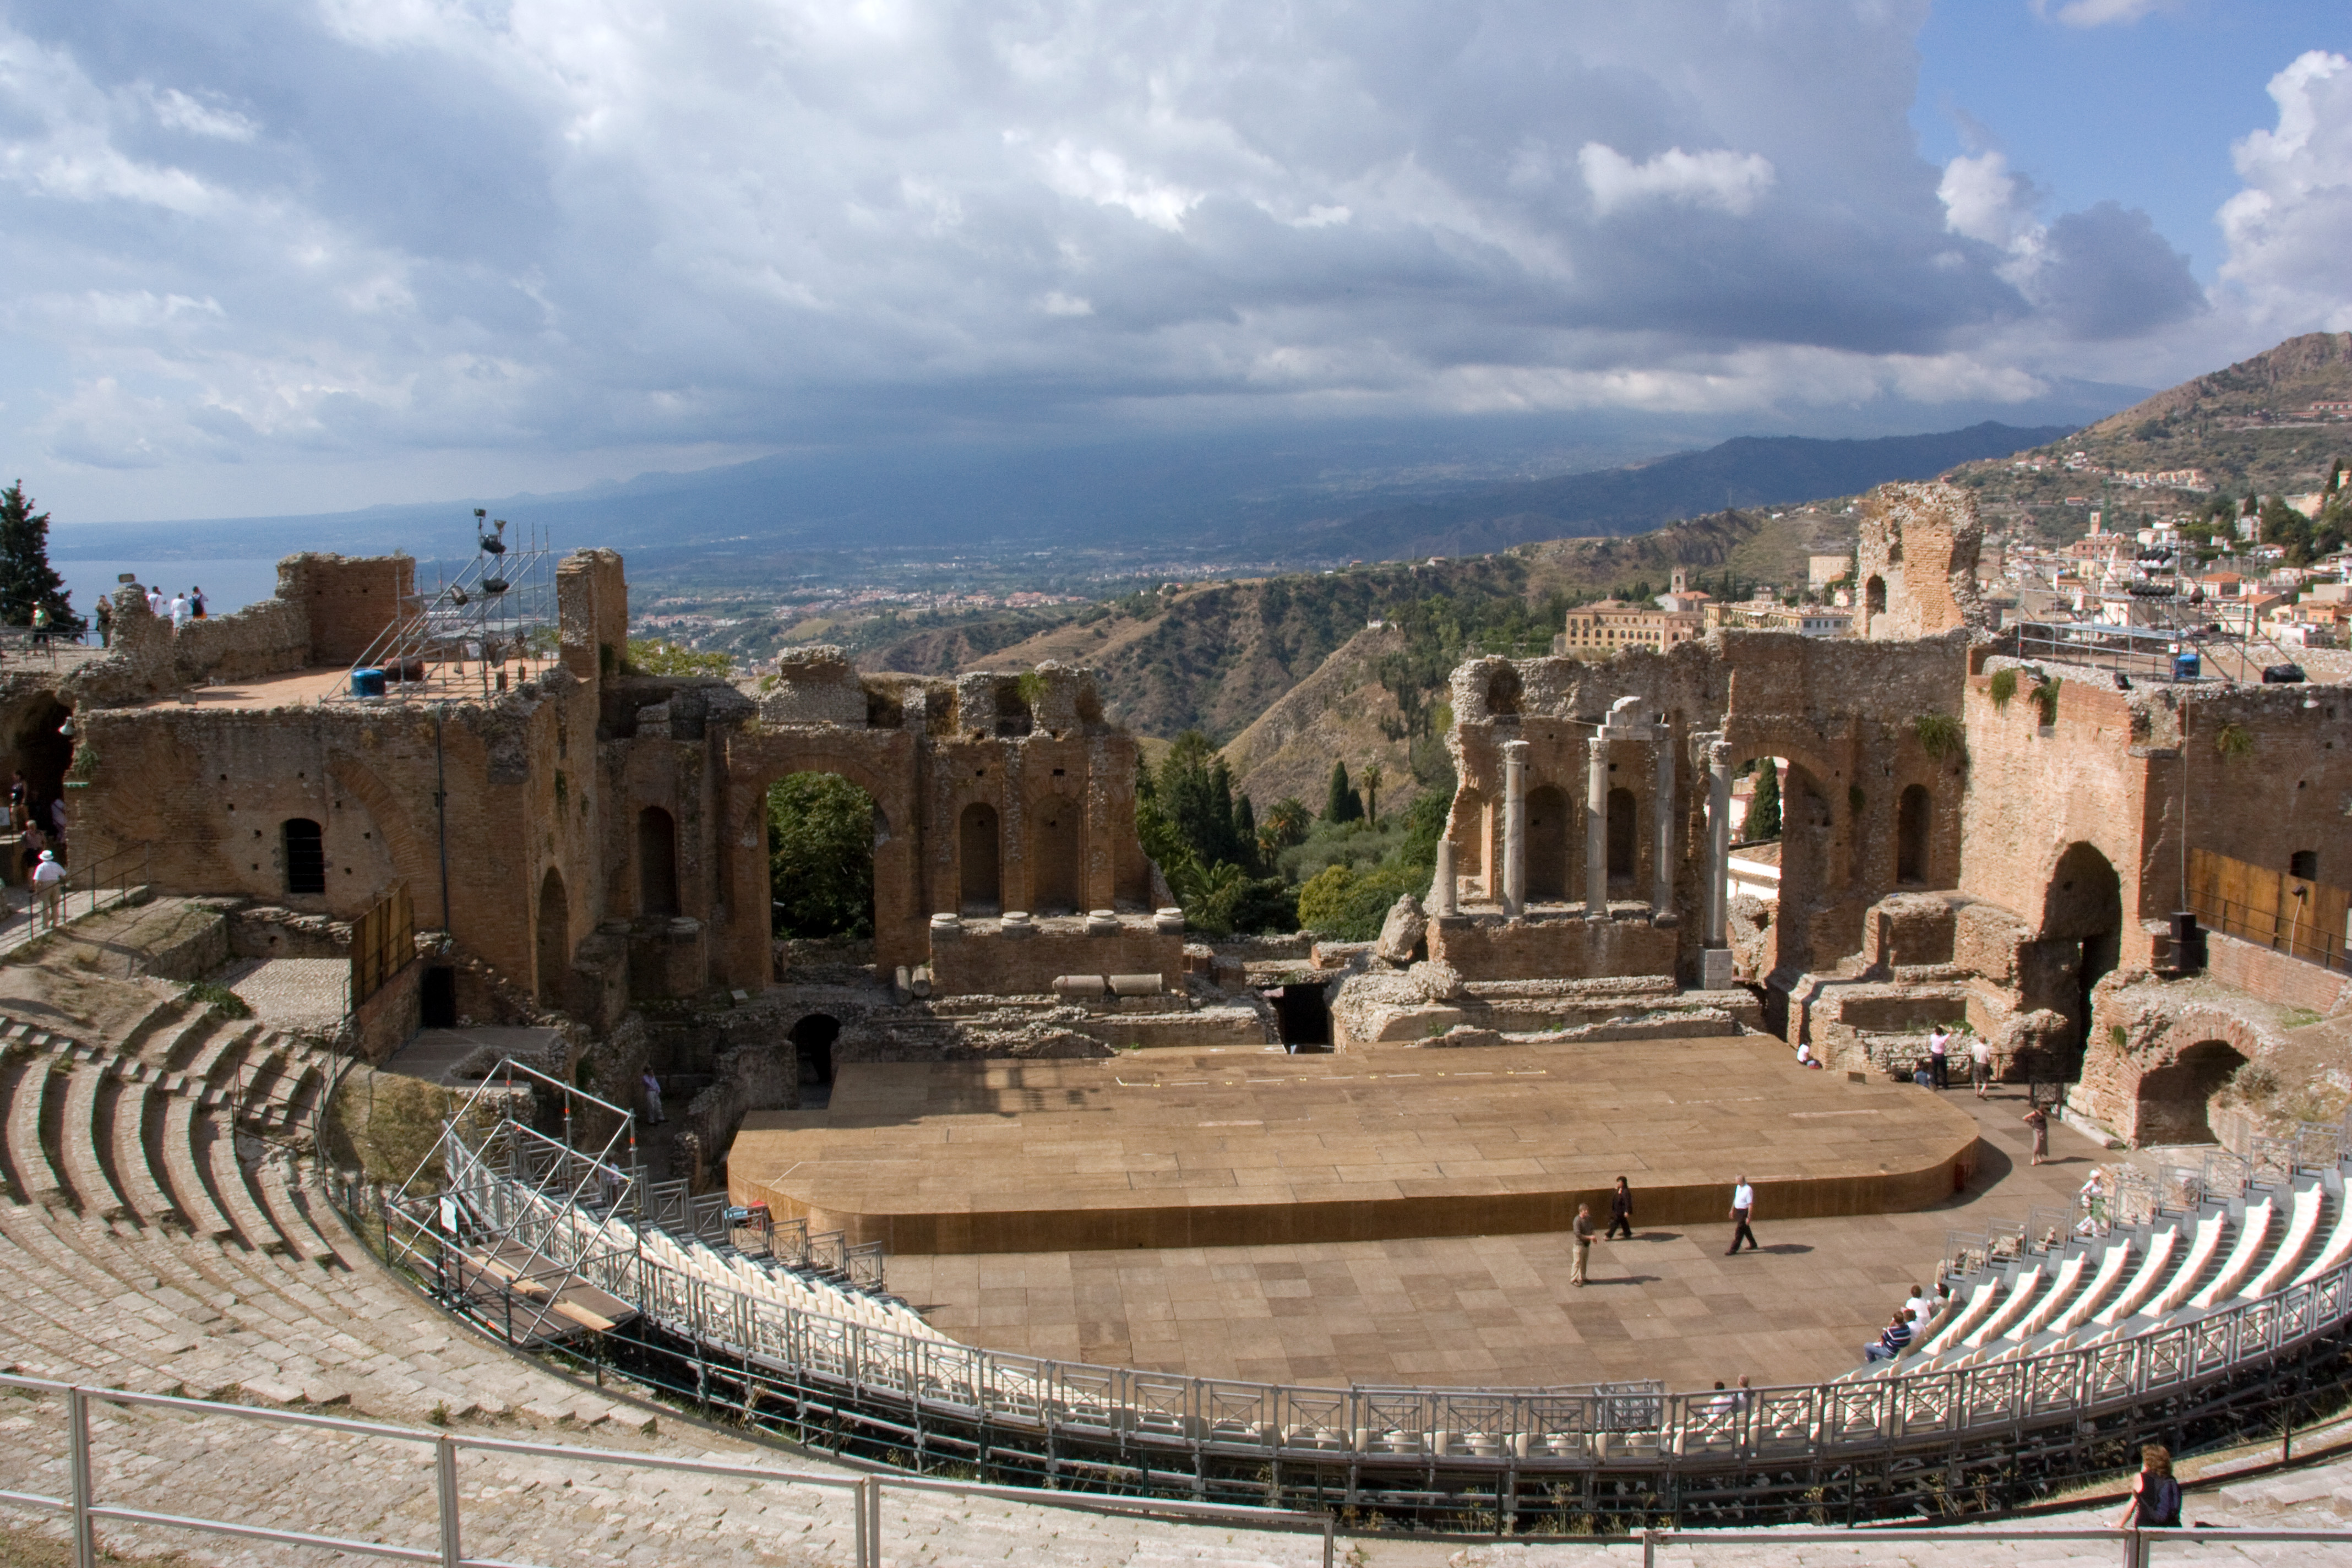 Top 6 Tourist Attractions In Taormina